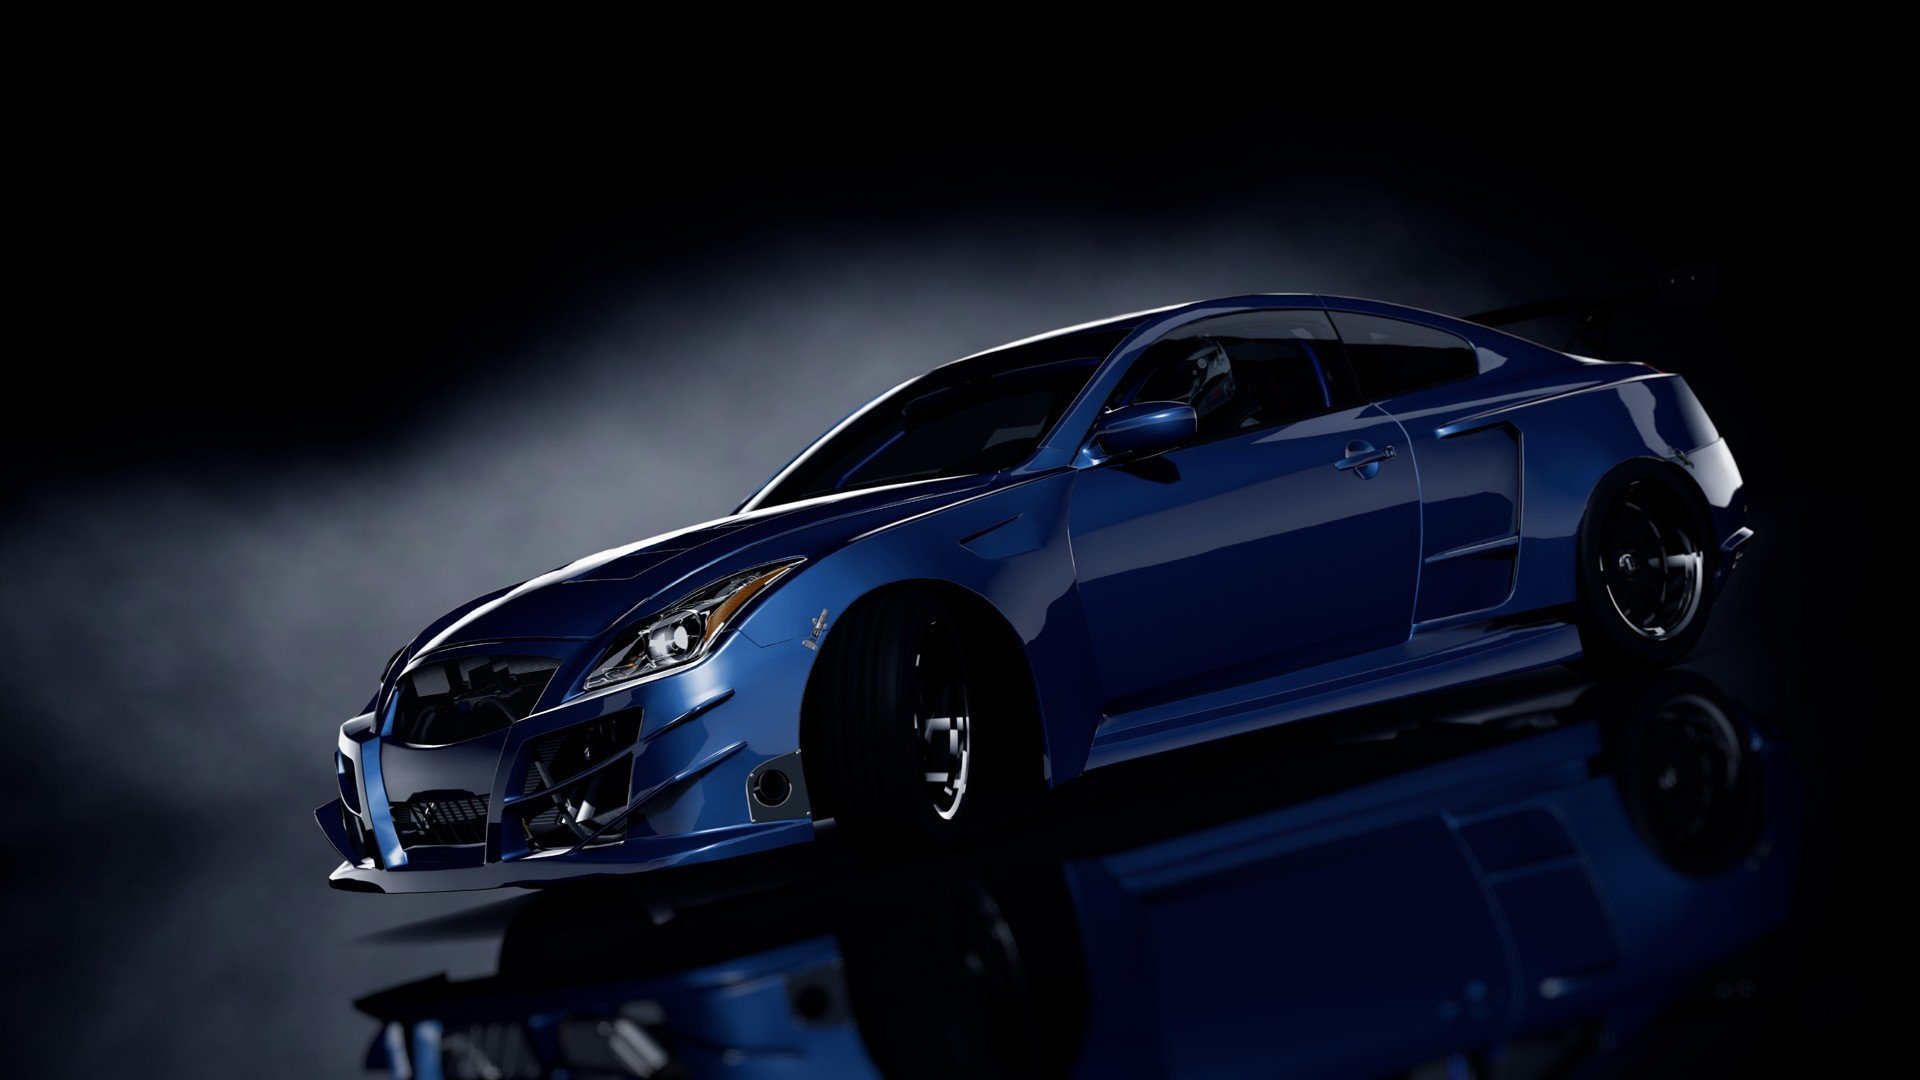 1920x1080 car, Blue cars, Black background, 3D Wallpapers HD / Desktop and Mobile  Backgrounds